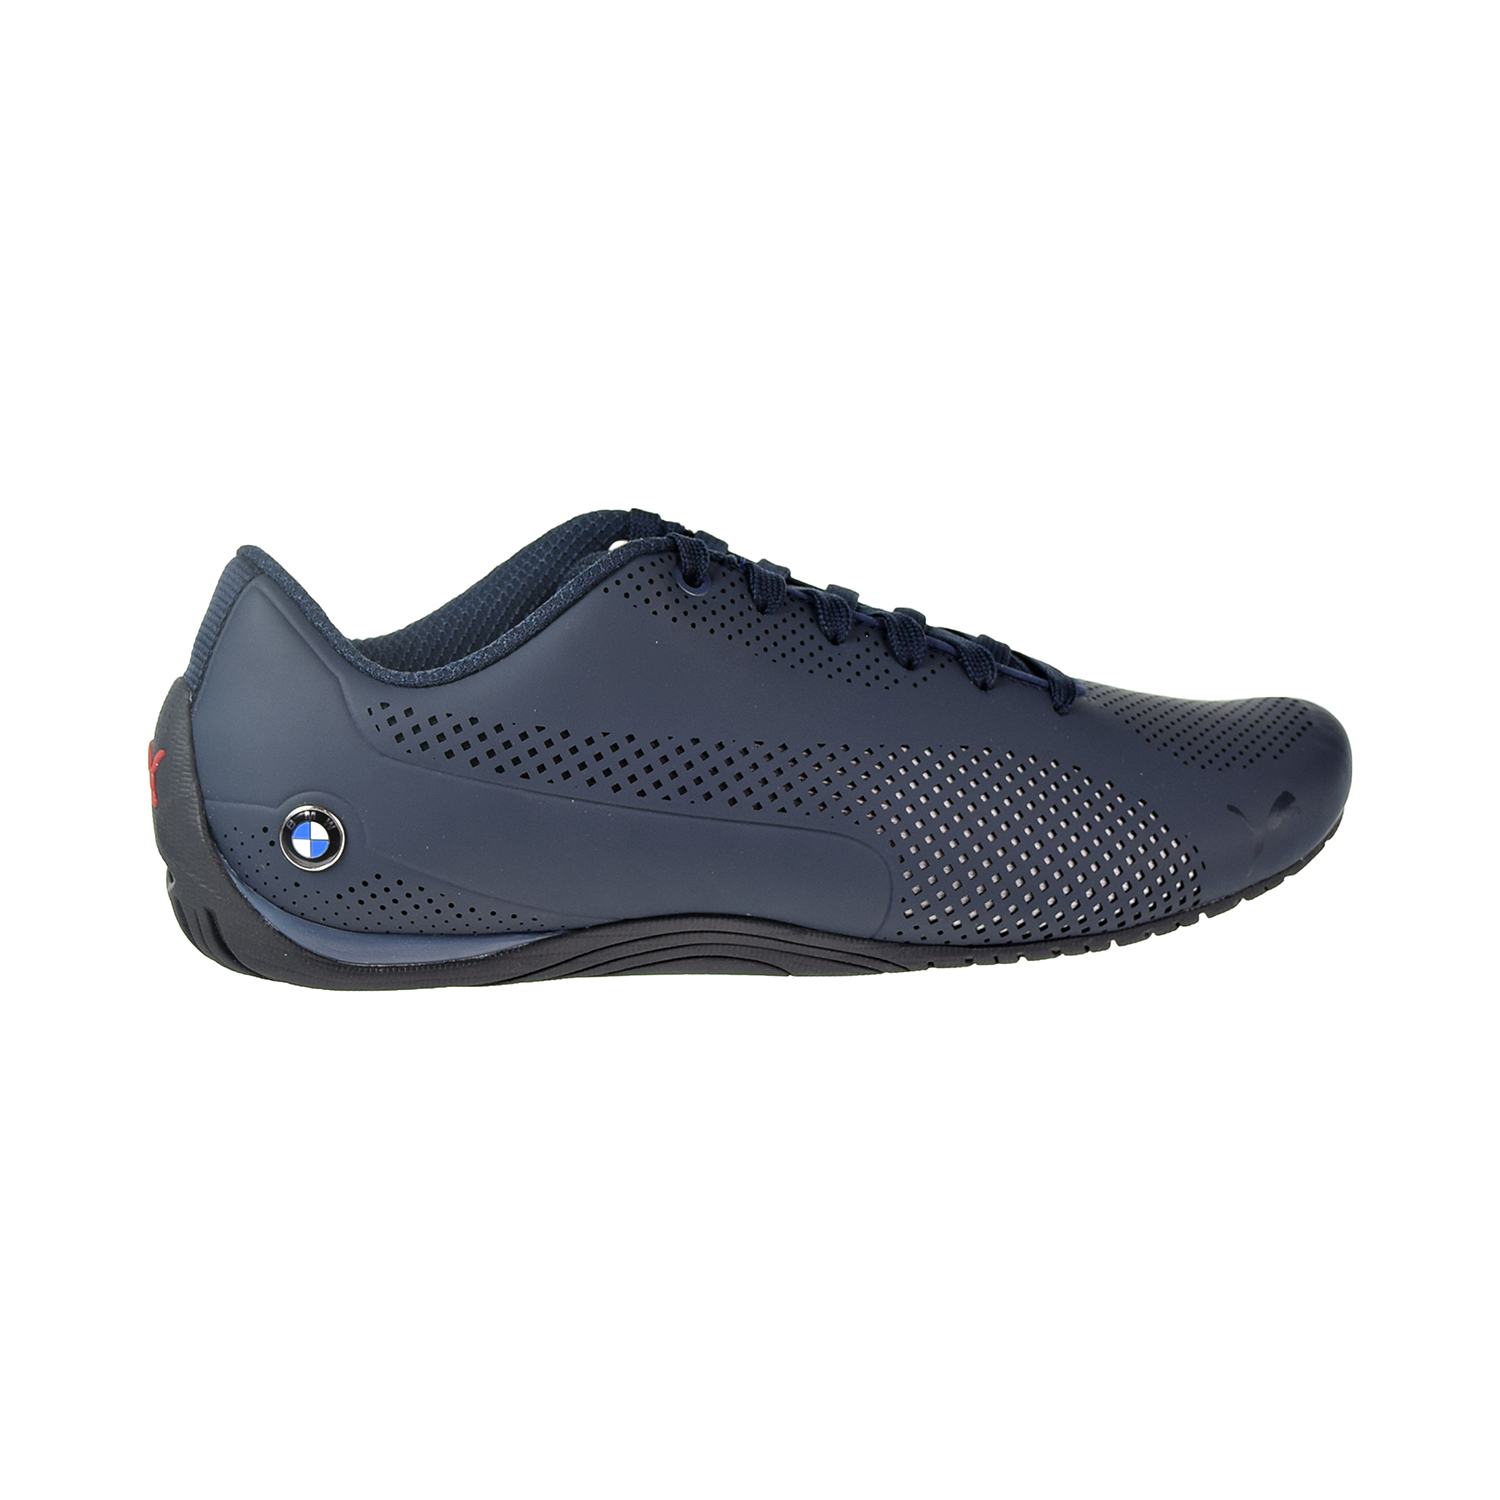 05b9194beaf Details about Puma BMW Motorsport Drift Cat 5 Ultra Men's Shoes Blue  305882-01